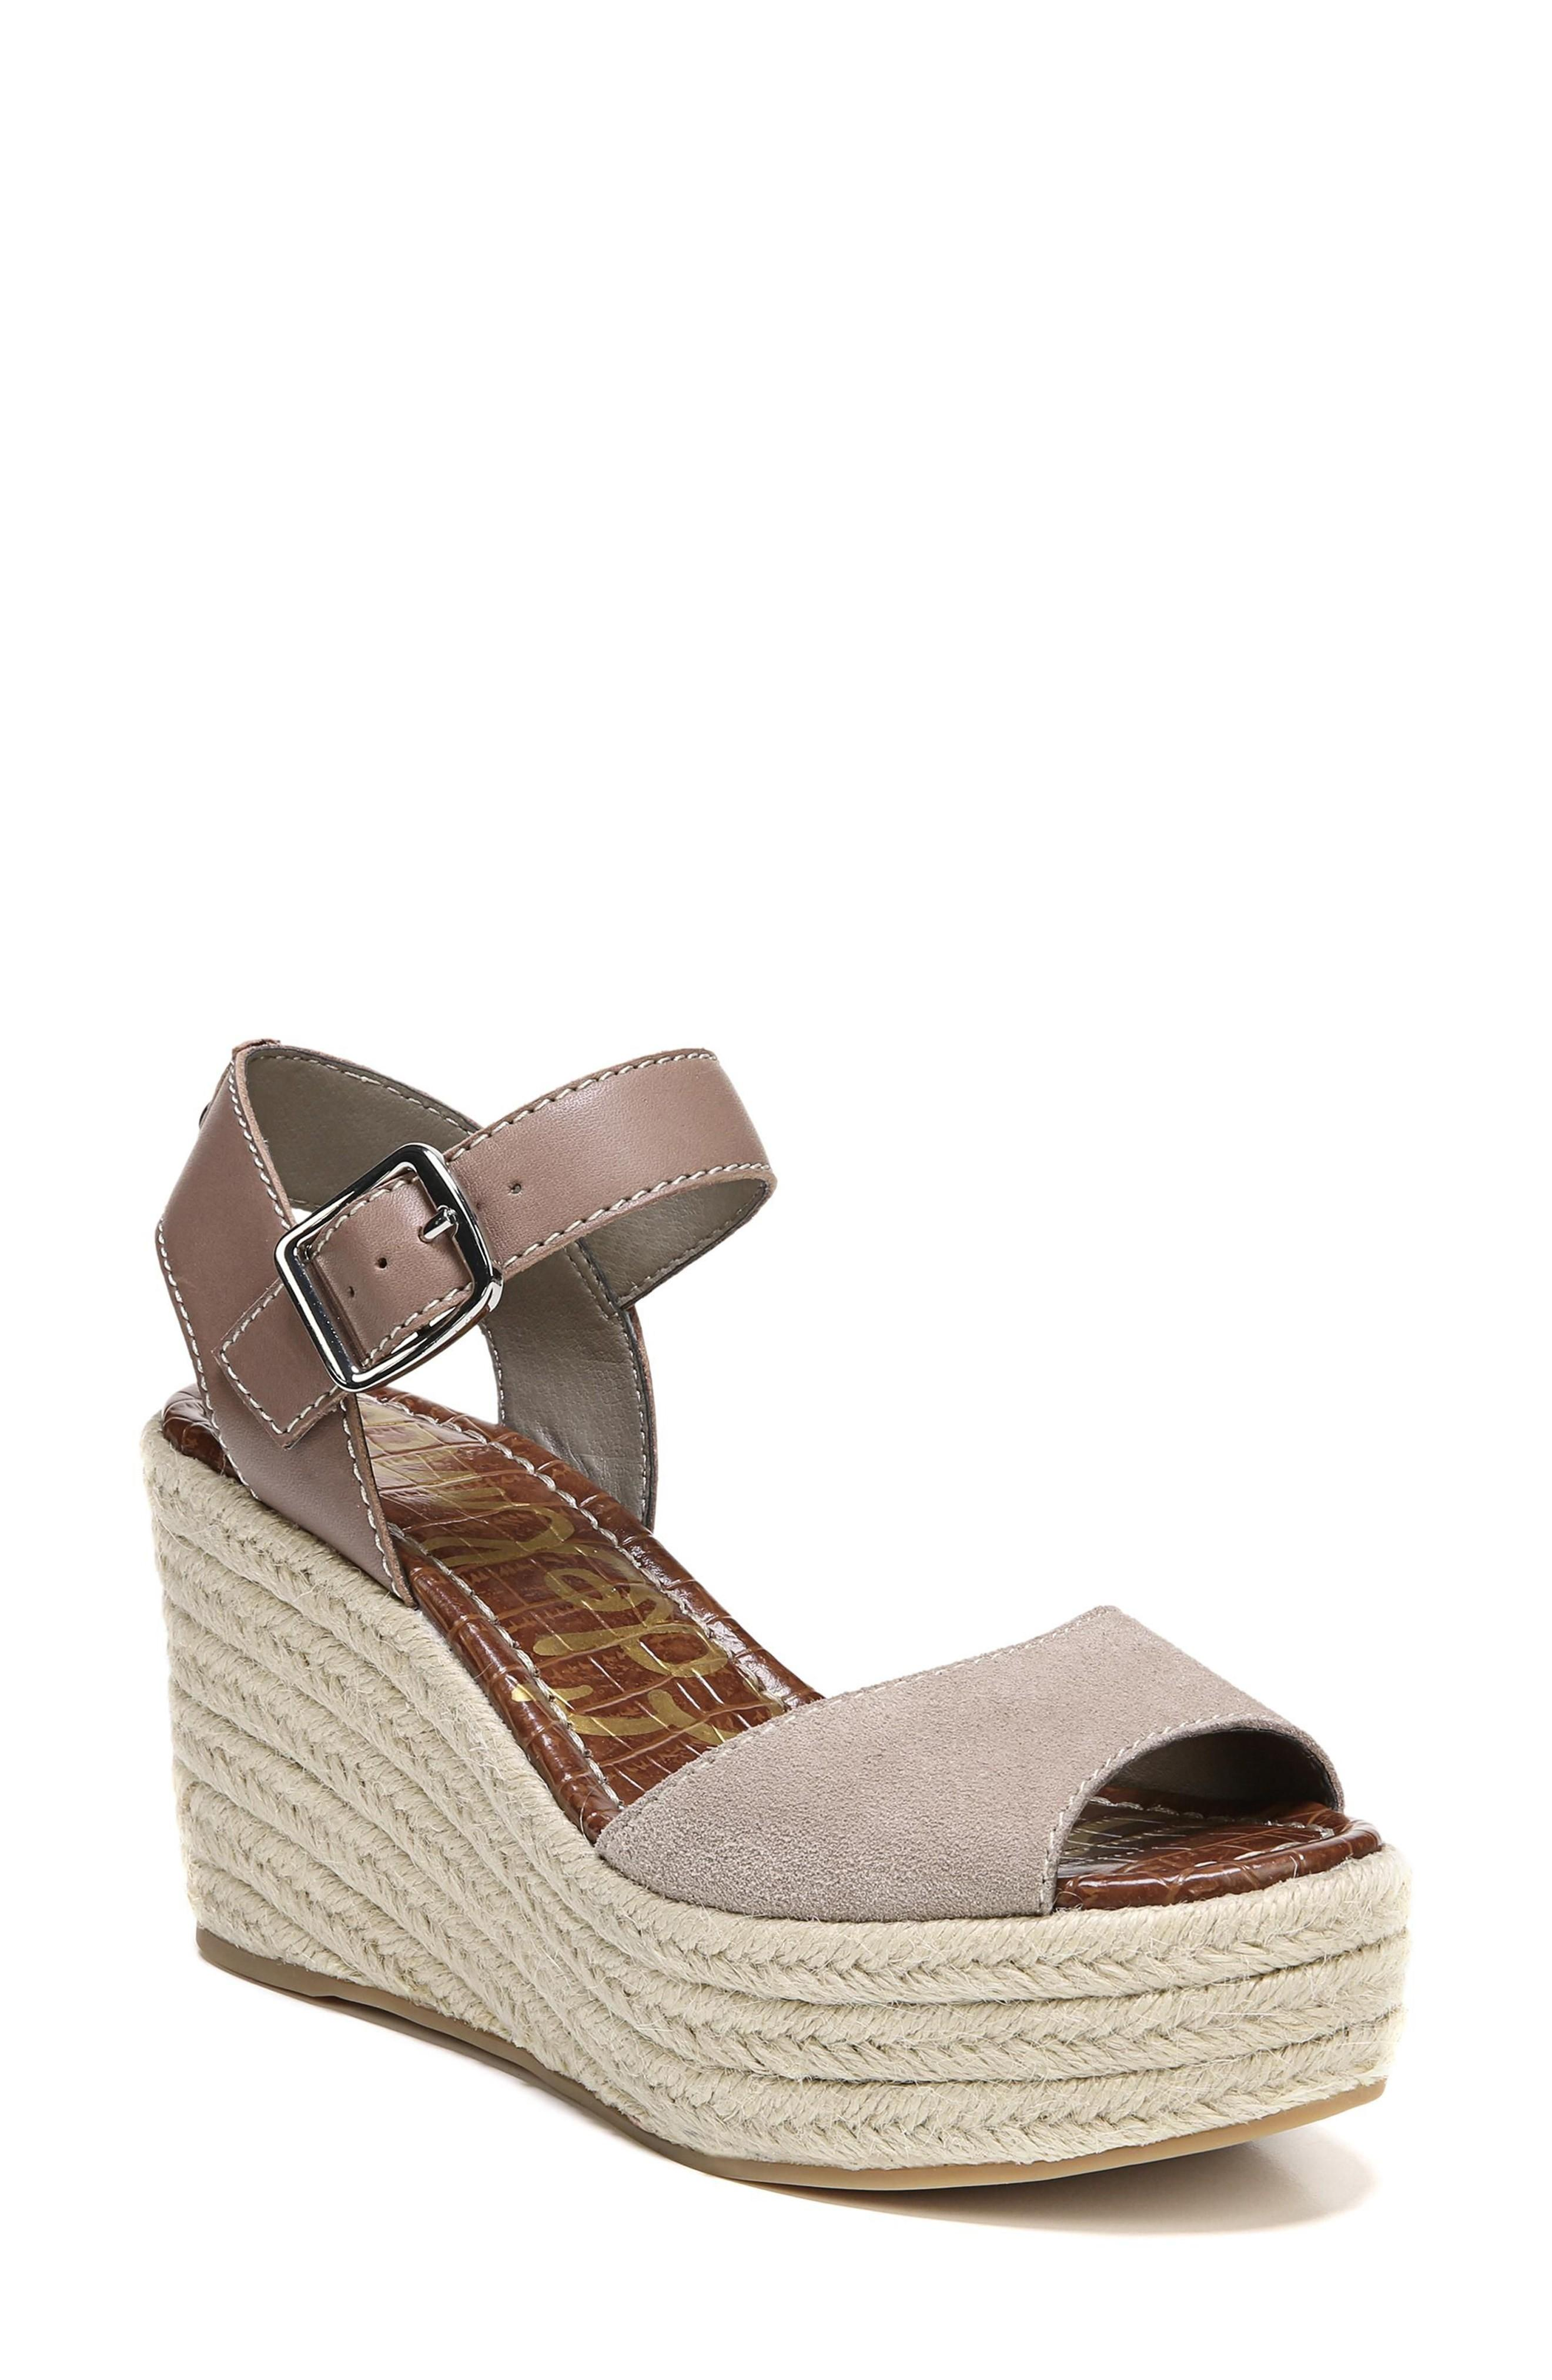 0fe0500125be An espadrille-style platform and wedge underscore the laid-back